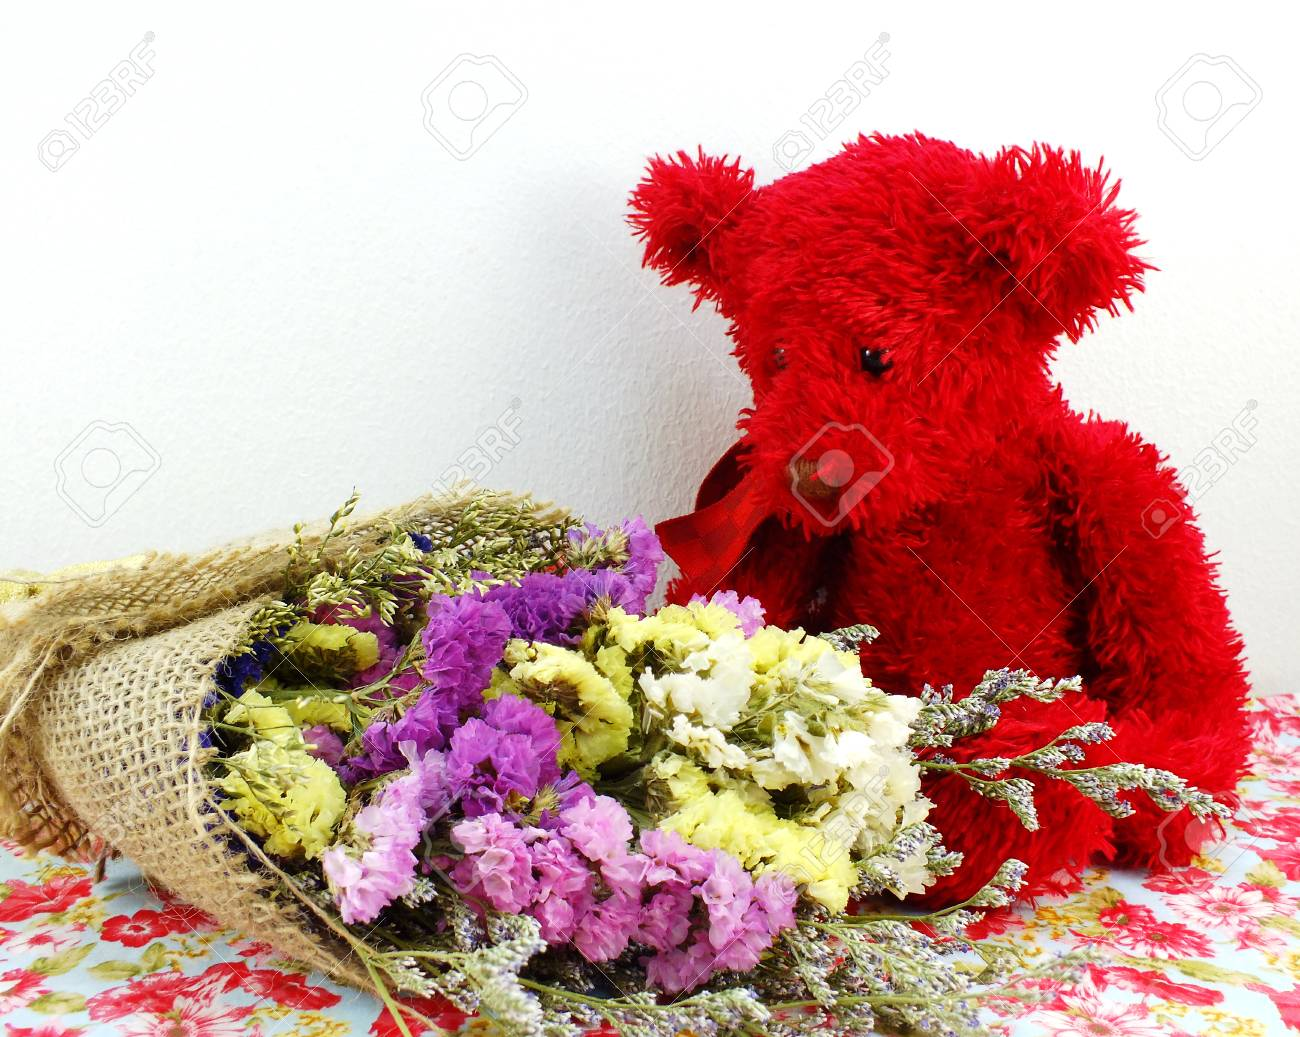 Red Teddy Bear And Statice Flower Bouquet With Printed Fabric Stock ...